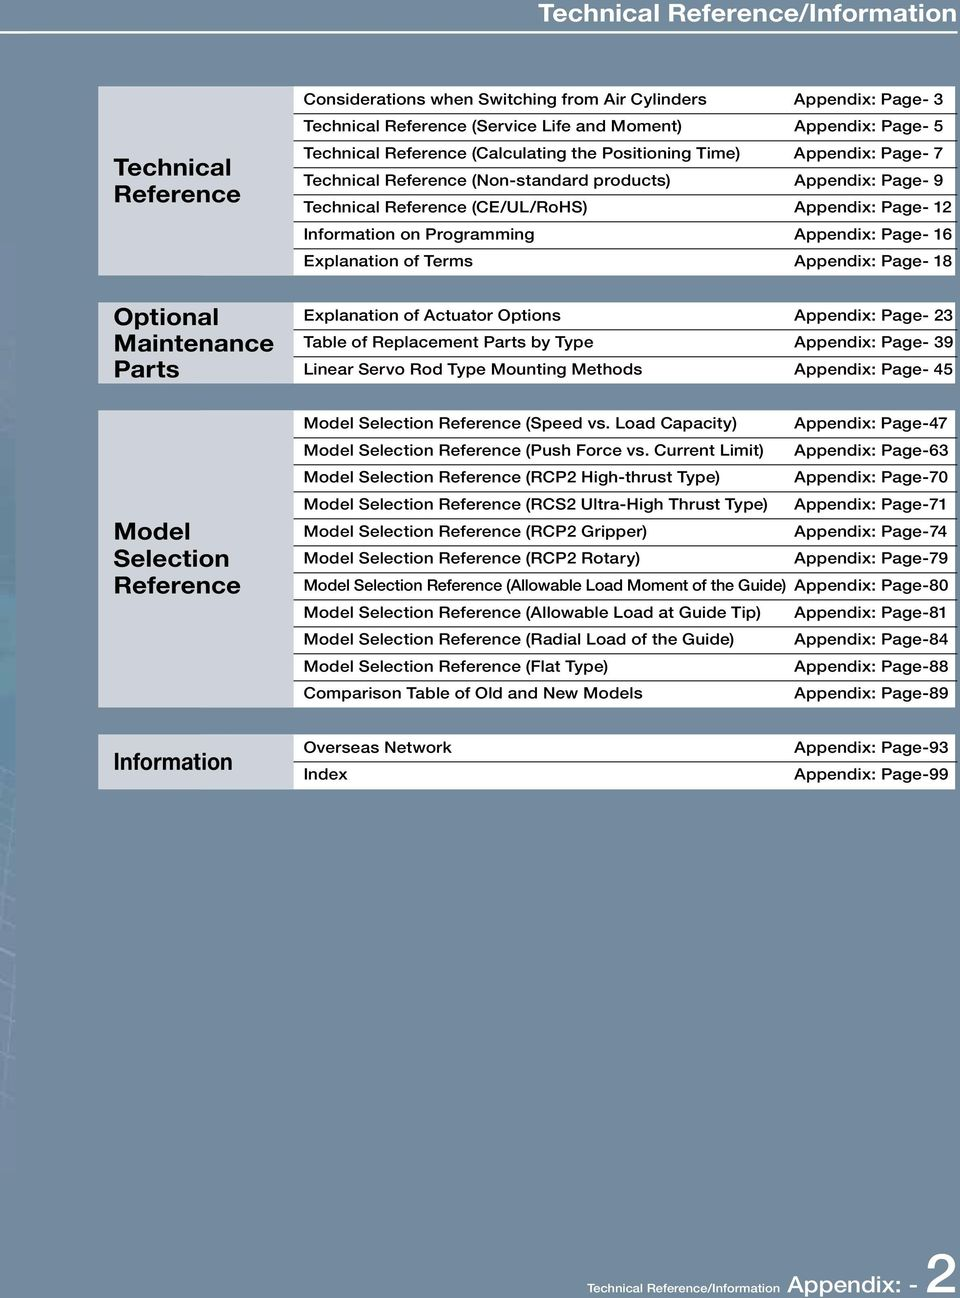 Technical Reference/Information Technical Reference/Information - PDF